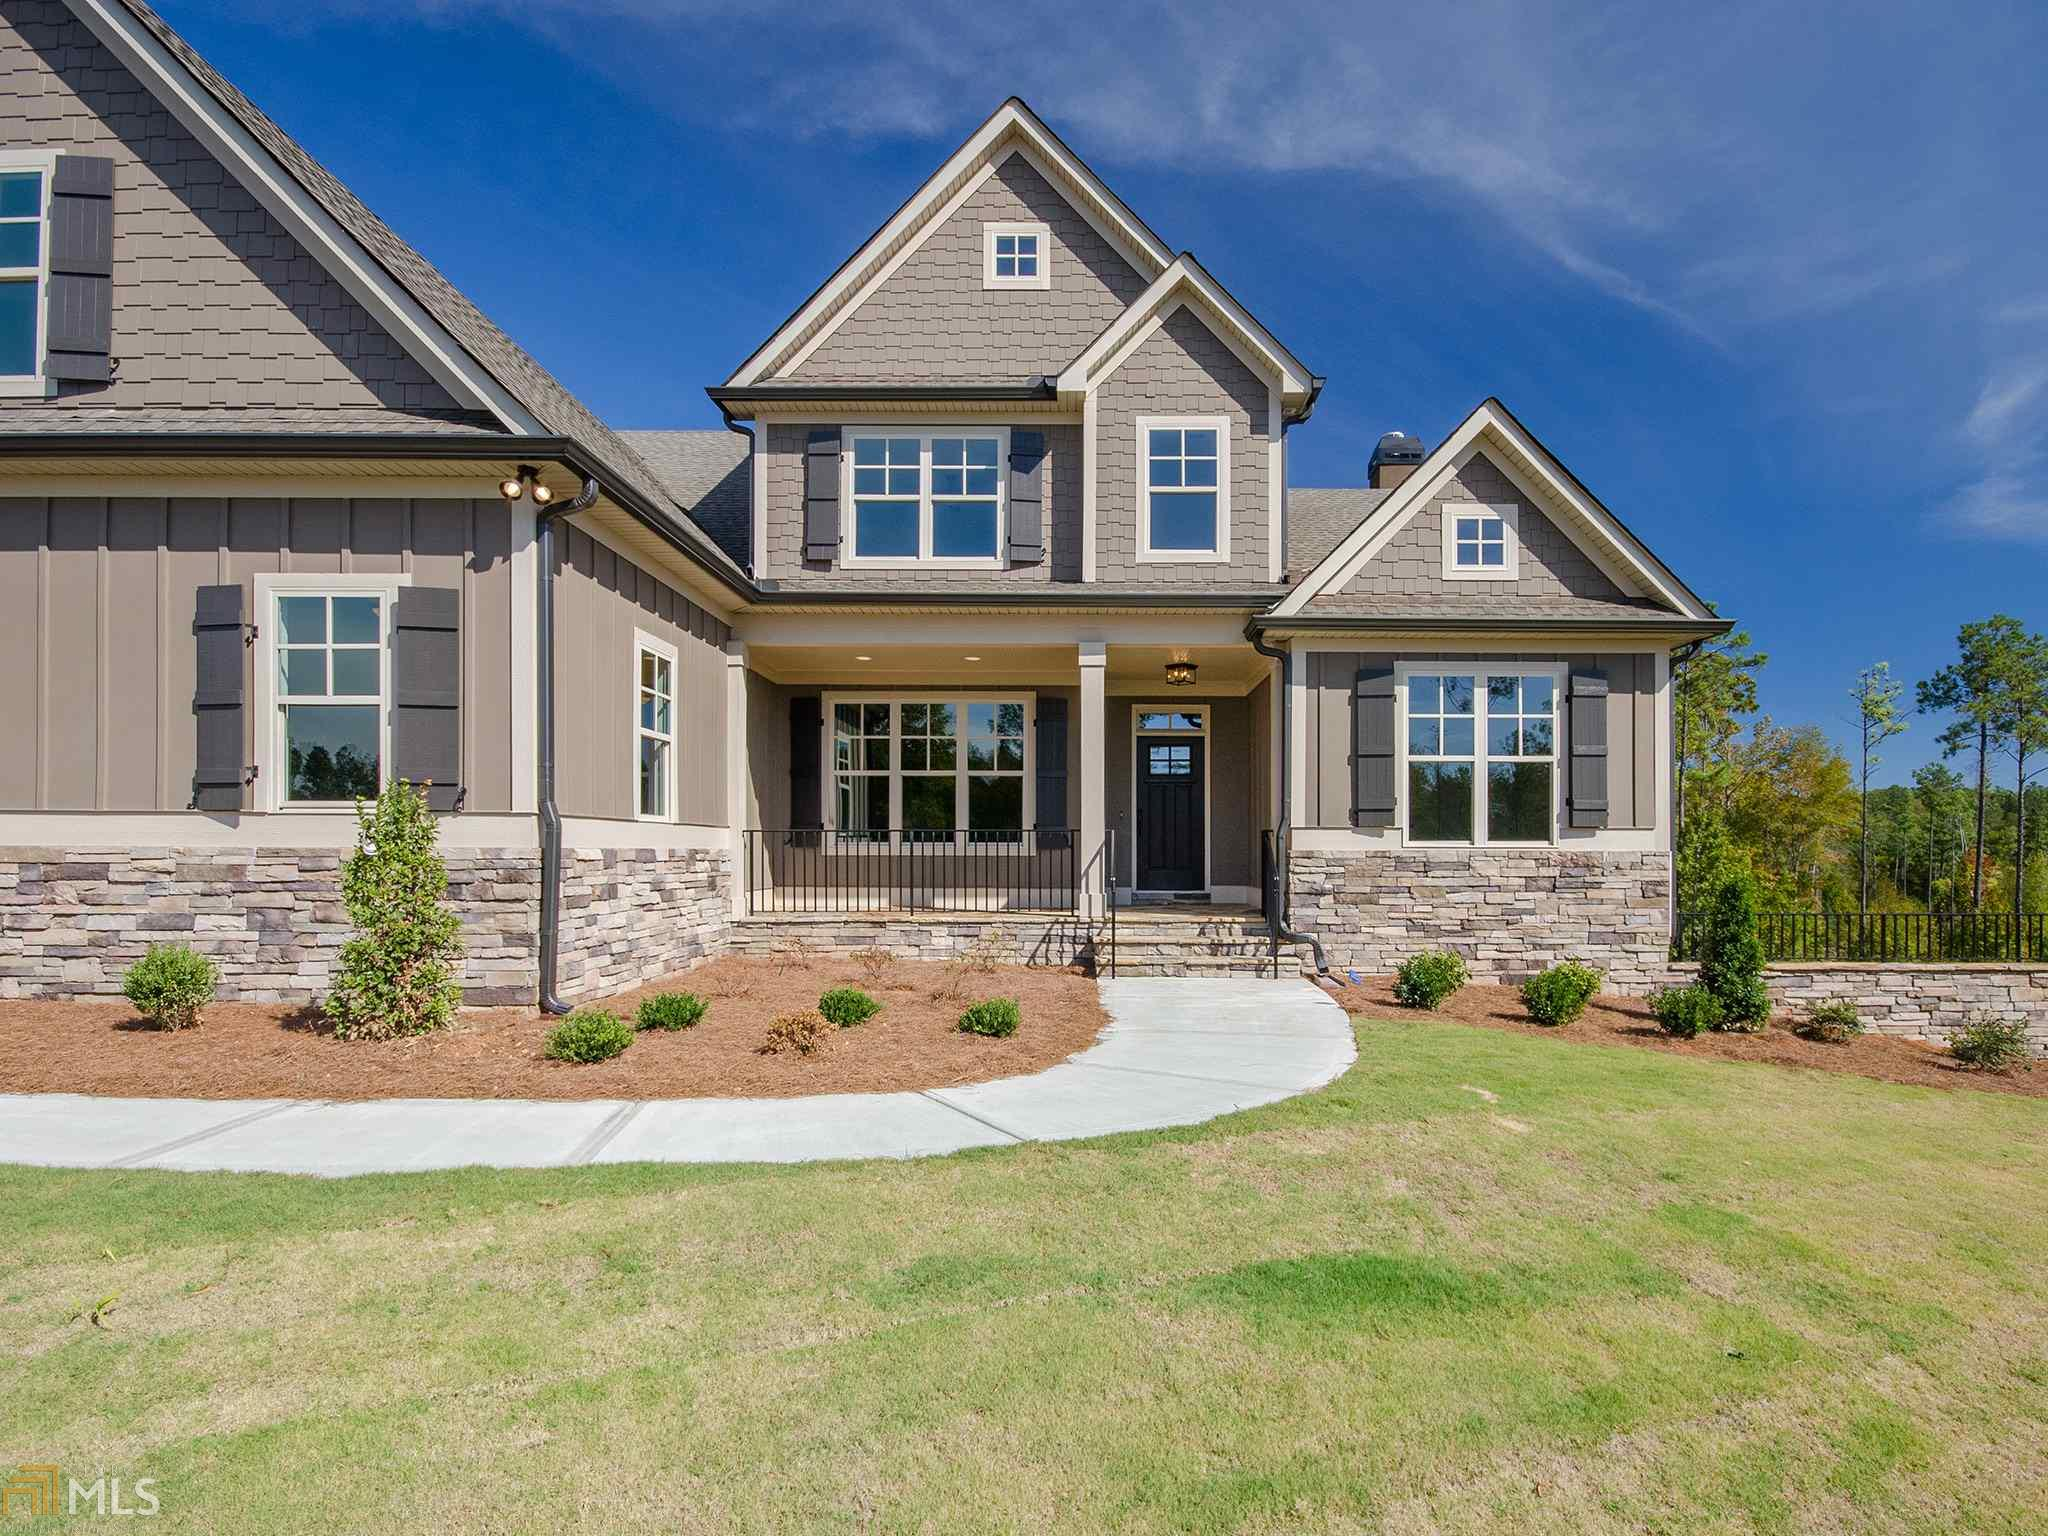 72 Raintree Court #34, Newnan, GA 30265